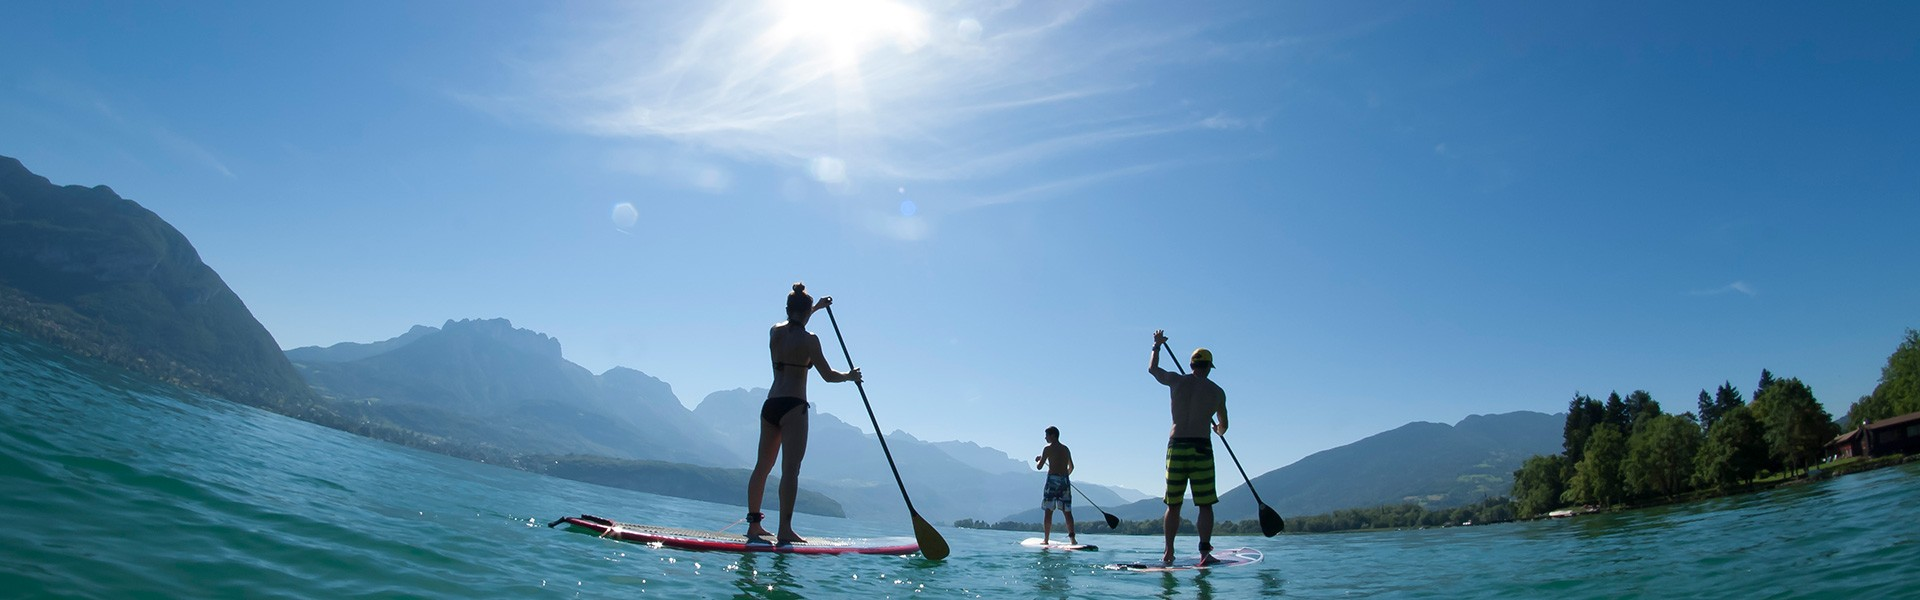 lac-d-annecy-paddle-p-leroy-2118